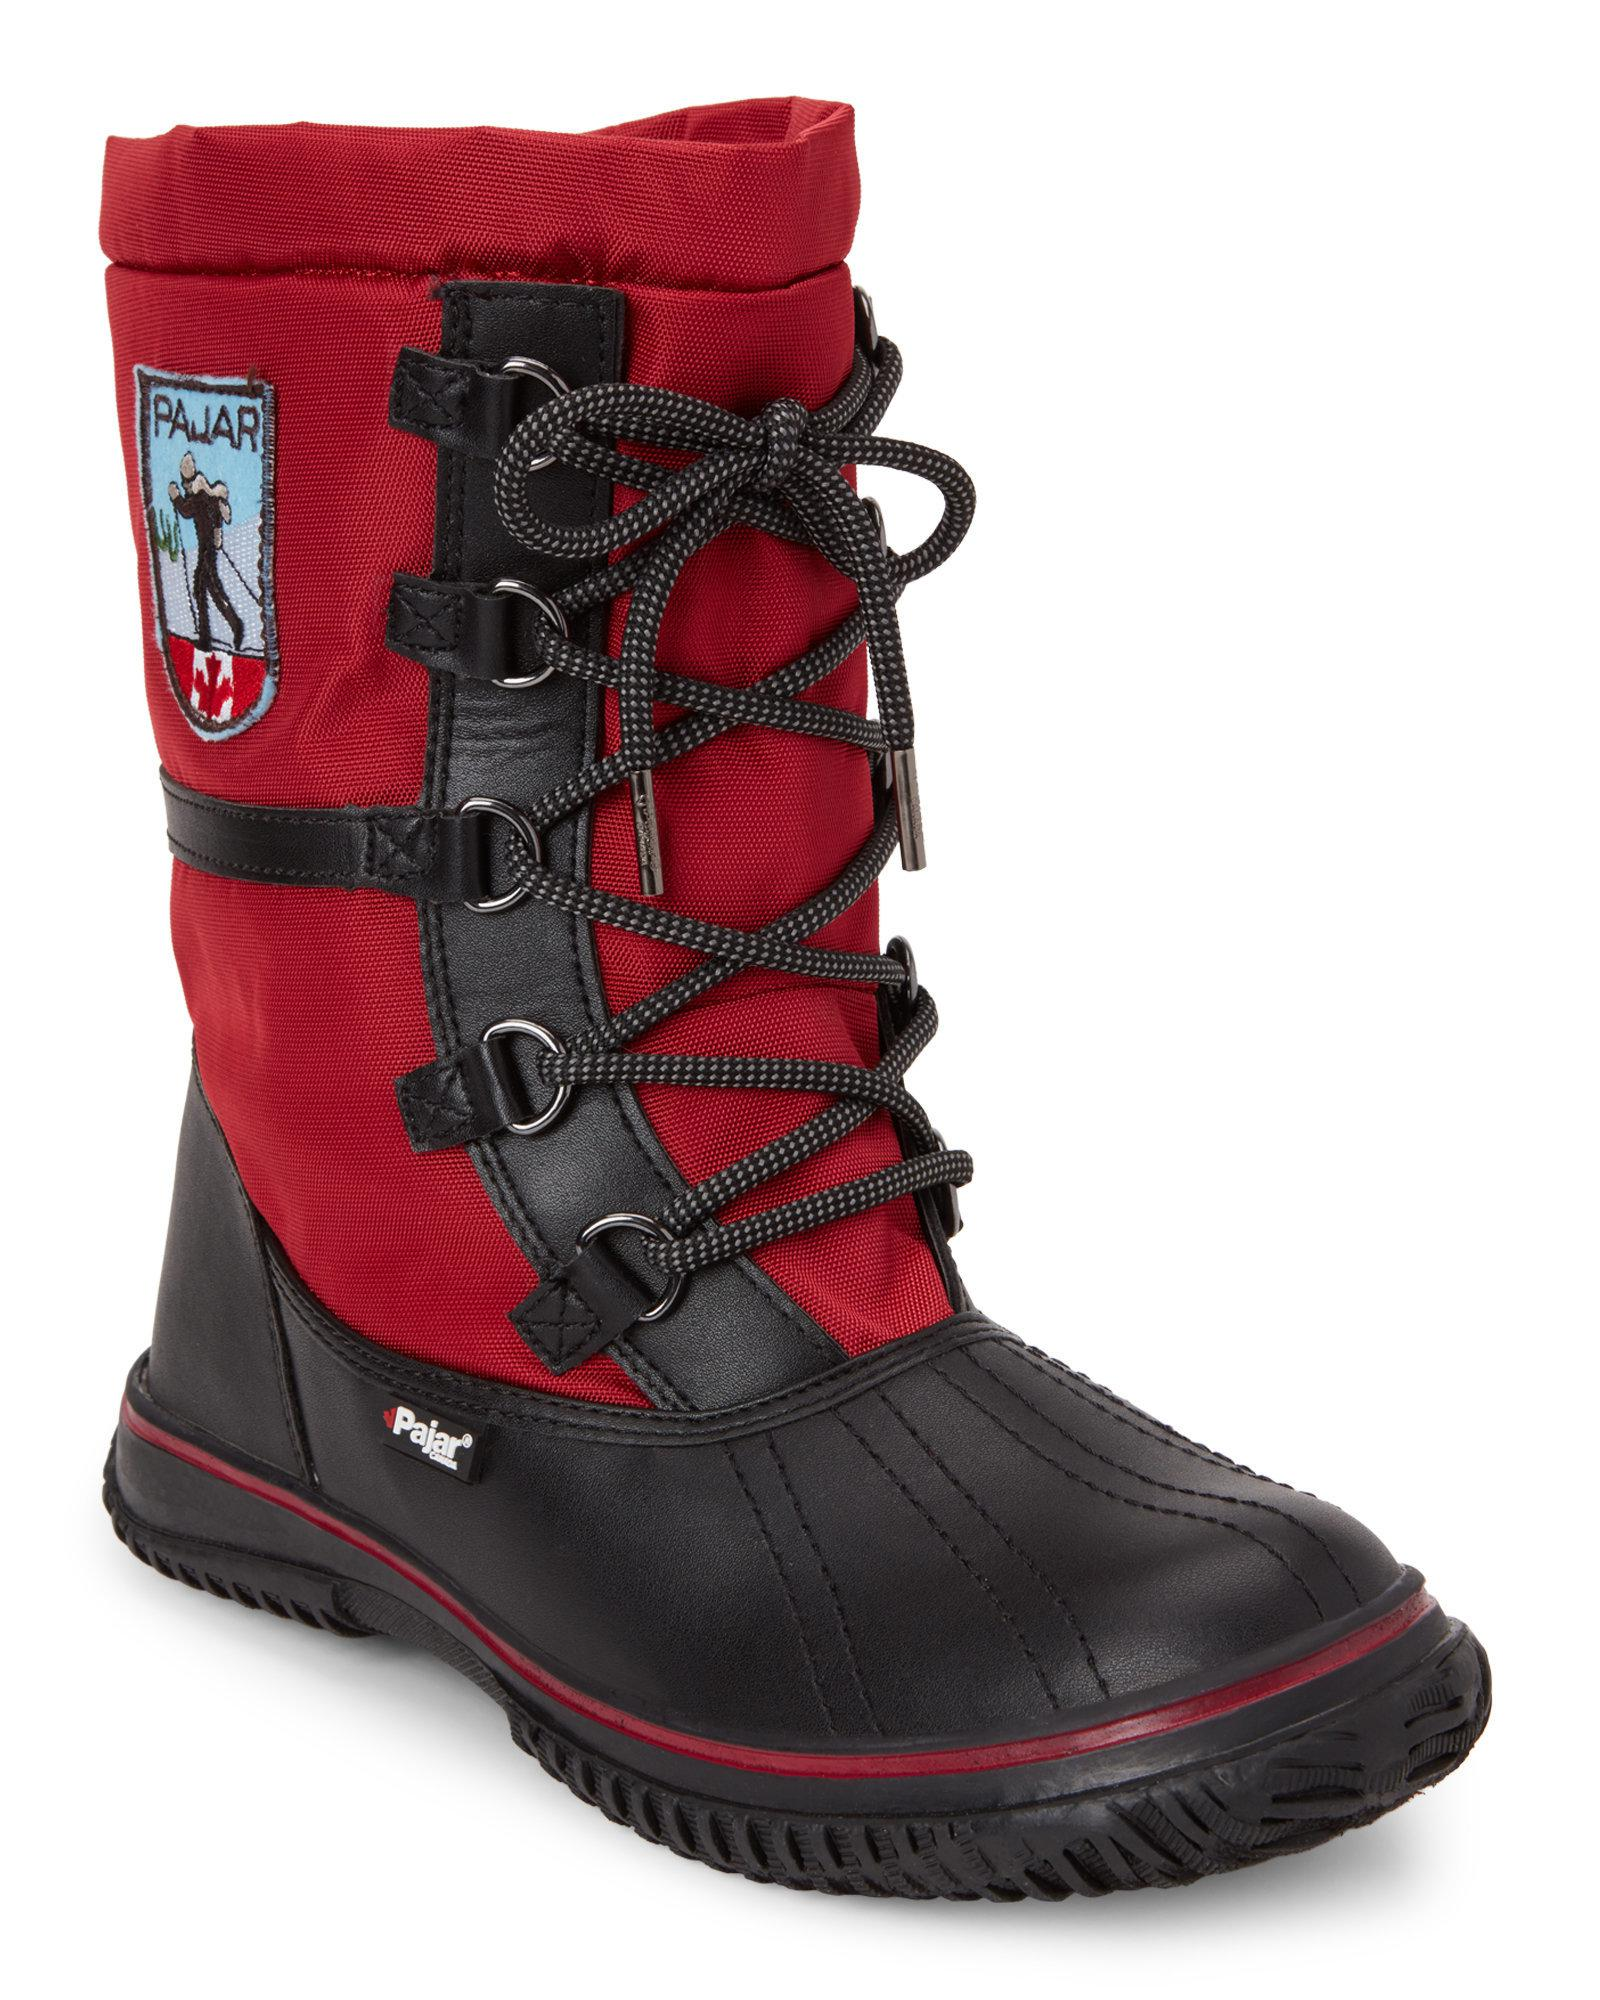 f62a3b2dcd45 Lyst - Pajar Black   Red Grip Low Snow Boots in Red